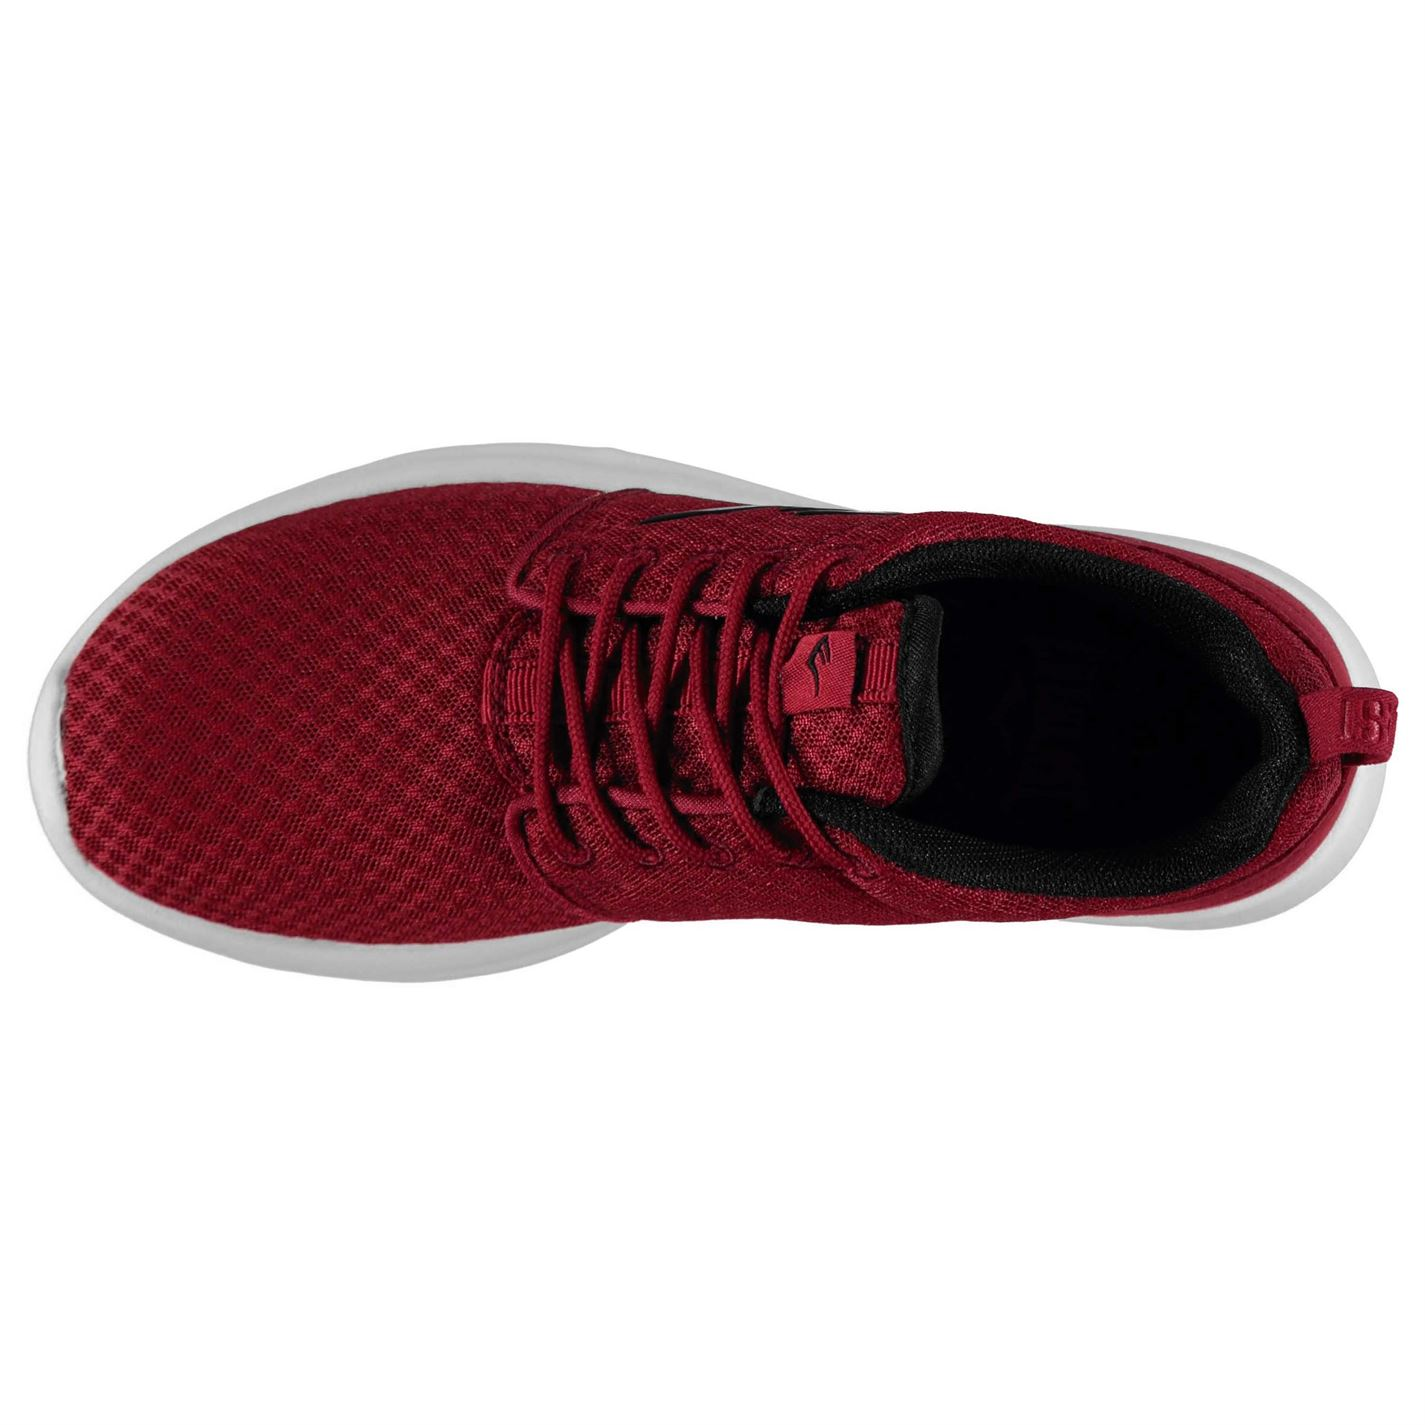 ae15a9fd0 Everlast Kids Sensei Run Juniors Trainers Lace Up Shoes Everyday ...